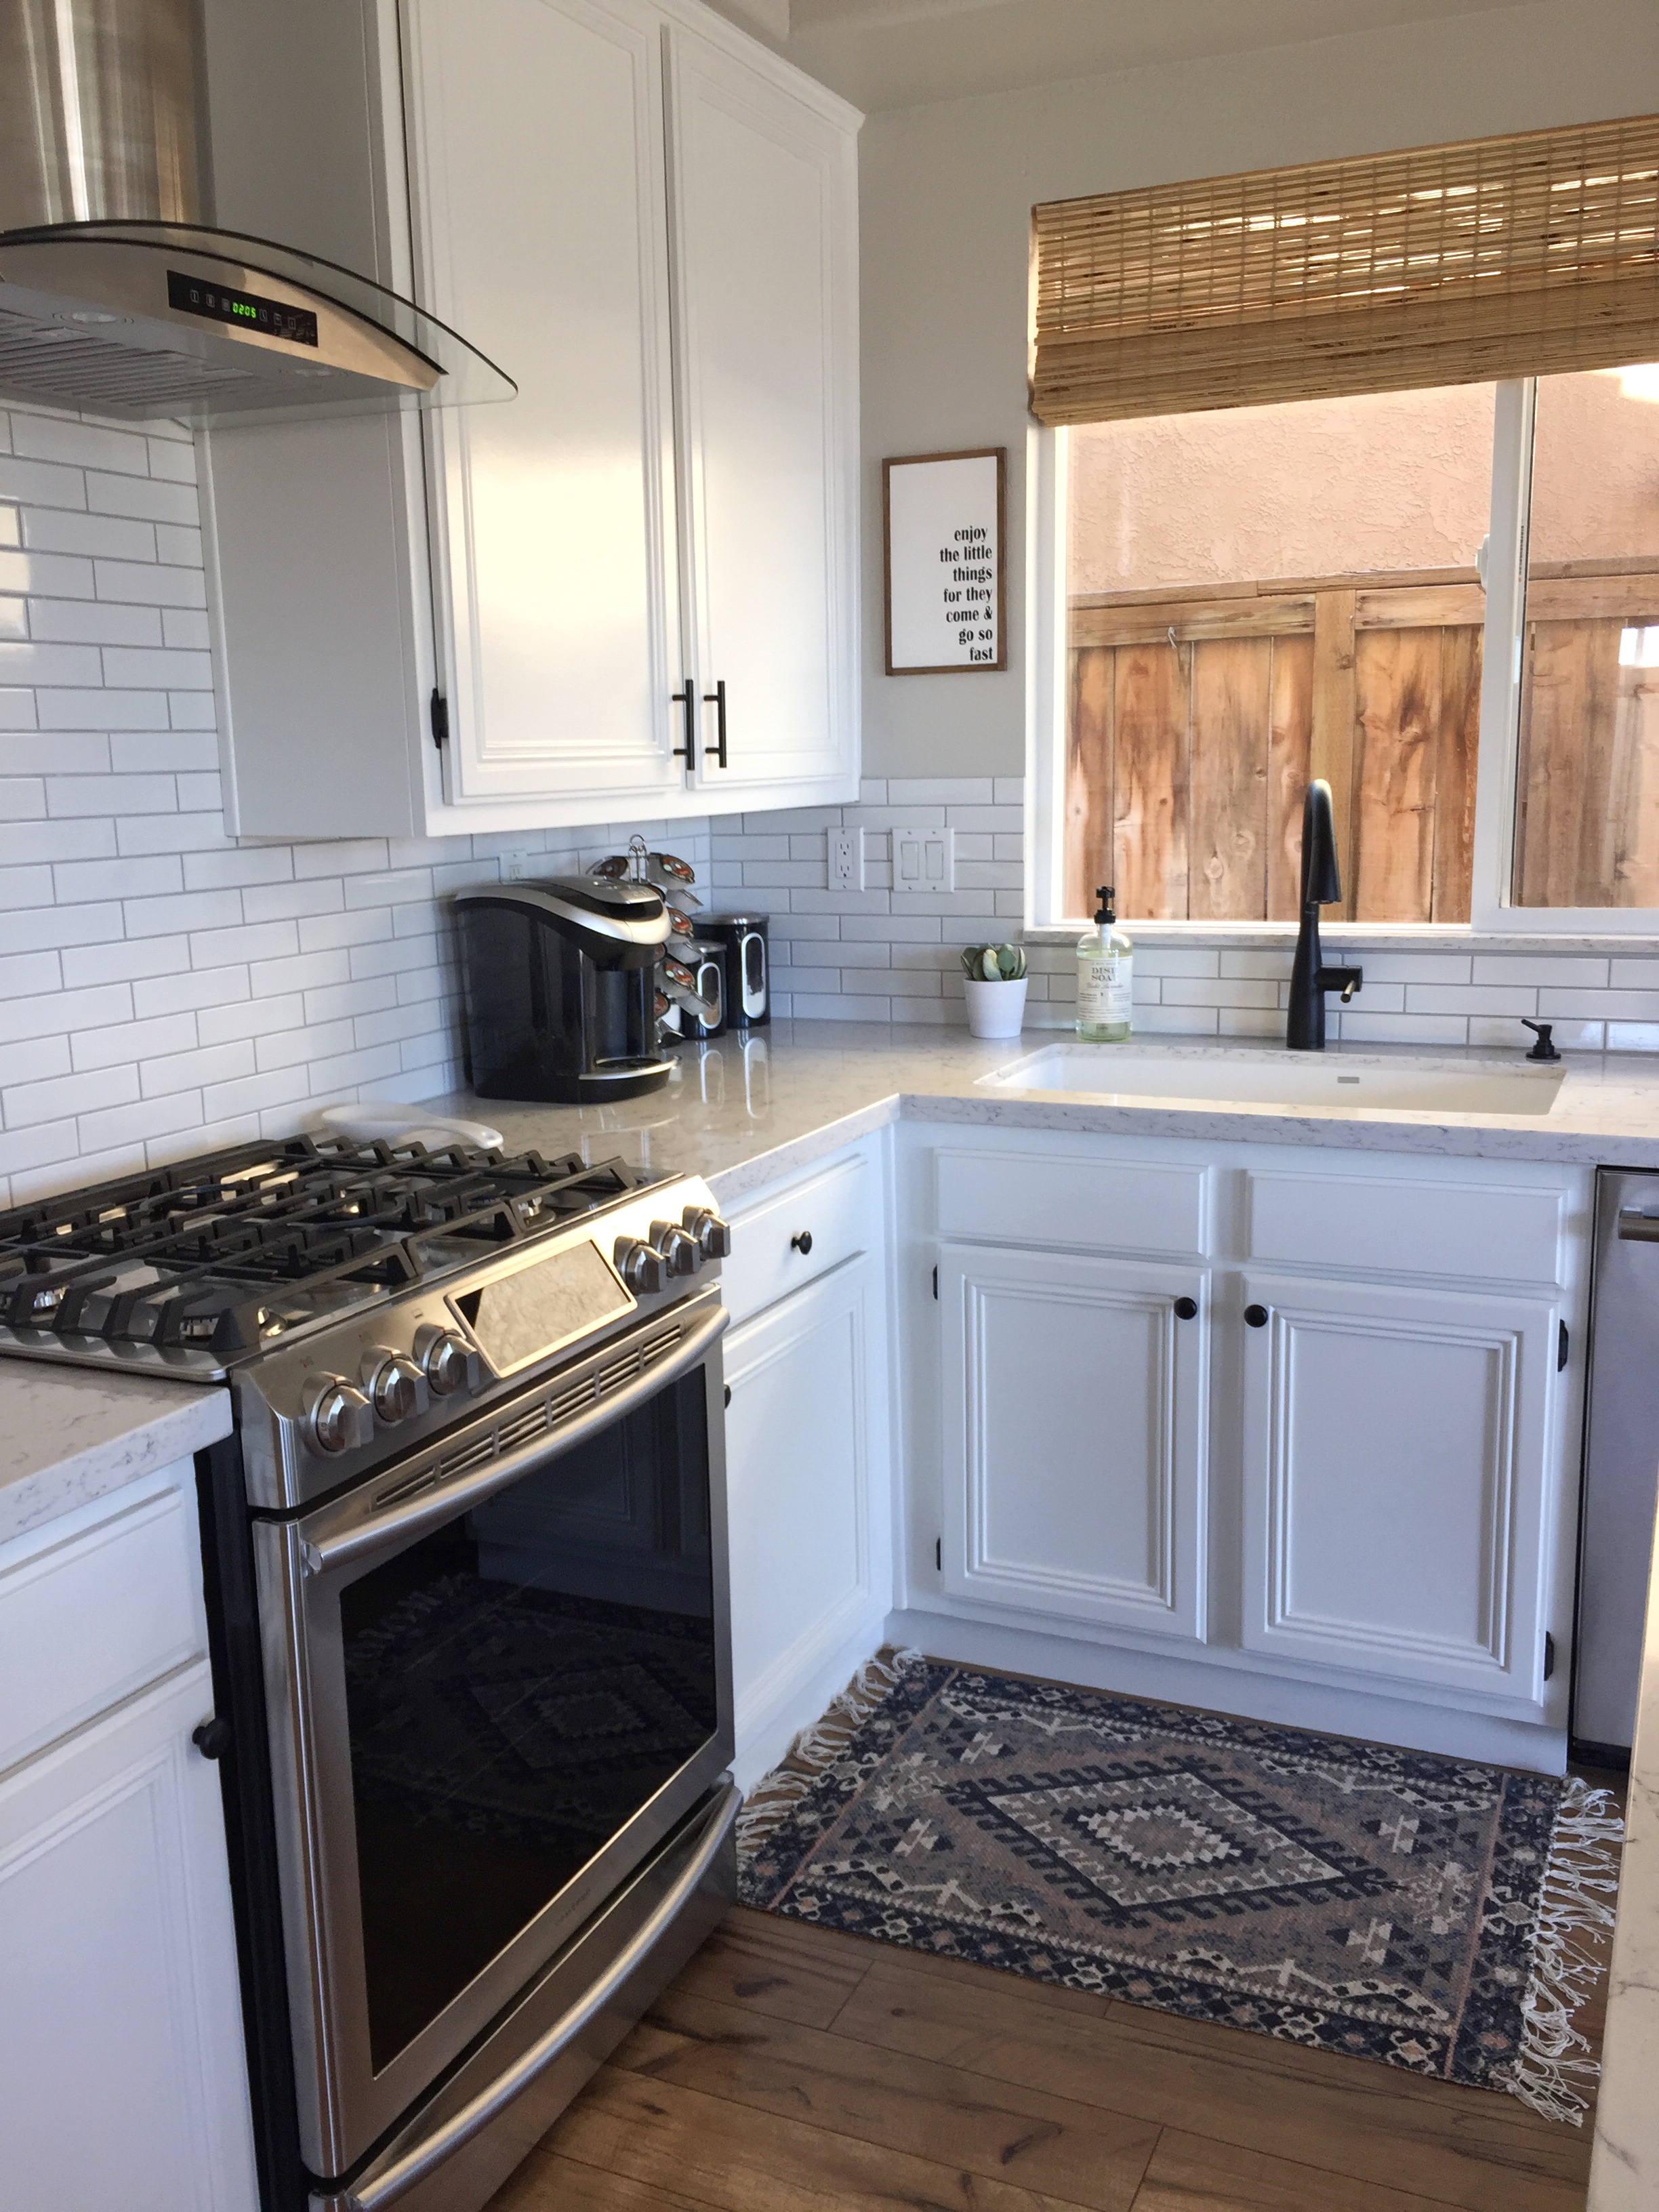 Refinish Your Kitchen Cabinets Like A Pro